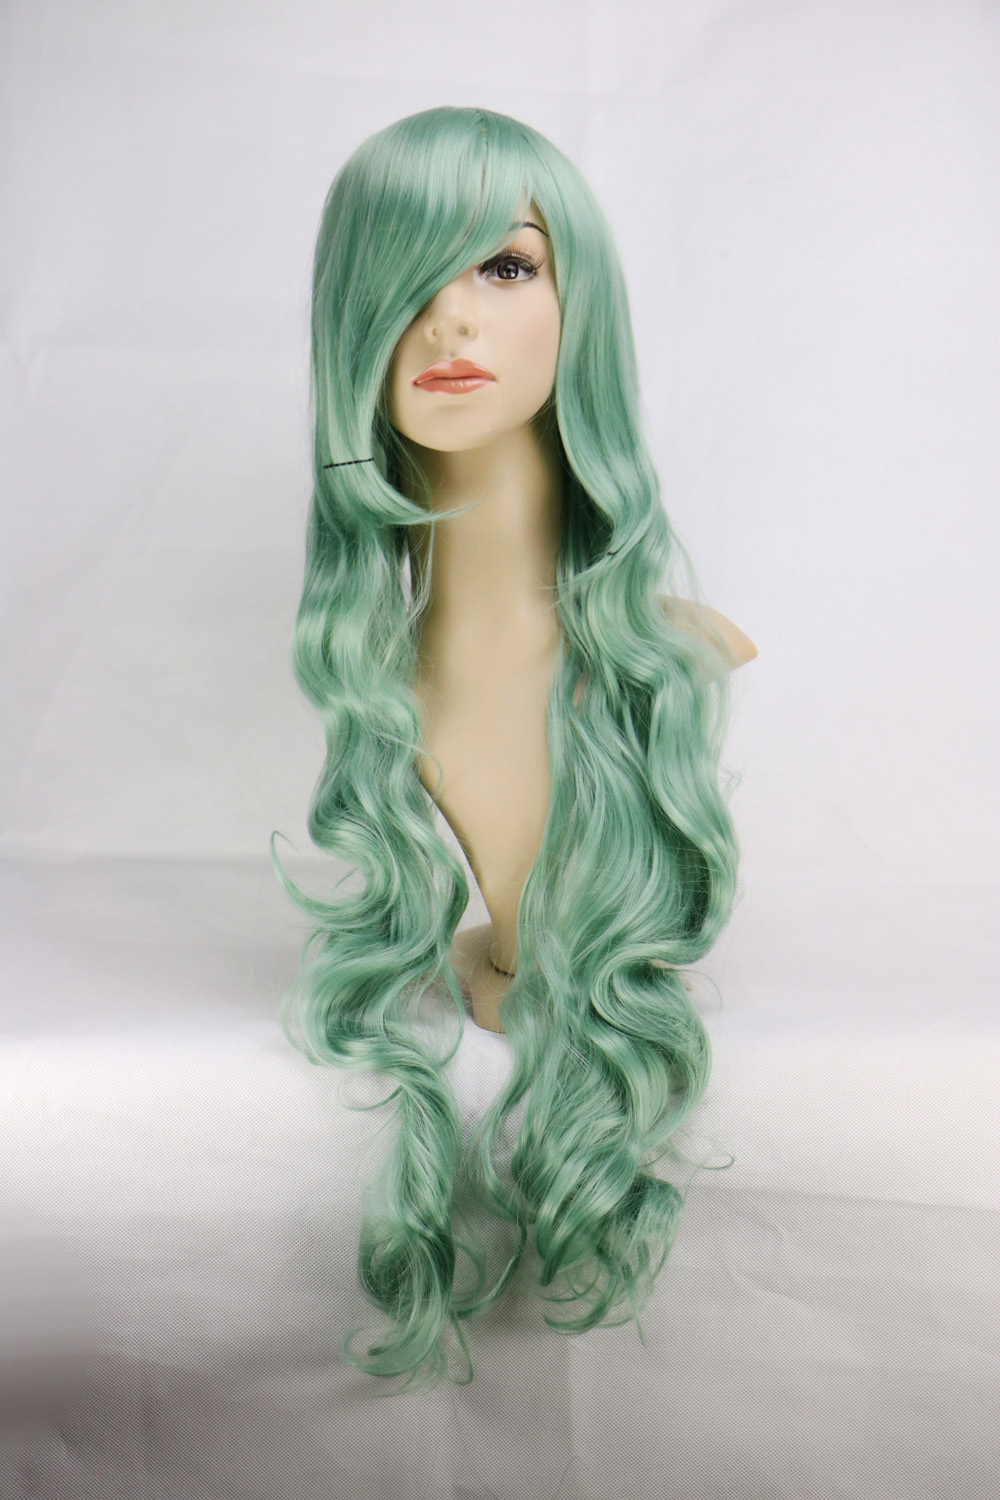 80 Cm COS Cosplay Wig Anime Costume Long Curly Wavy Synthetic Hair Green Wigs Women Ladies Party Perucas Pelucas<br><br>Aliexpress